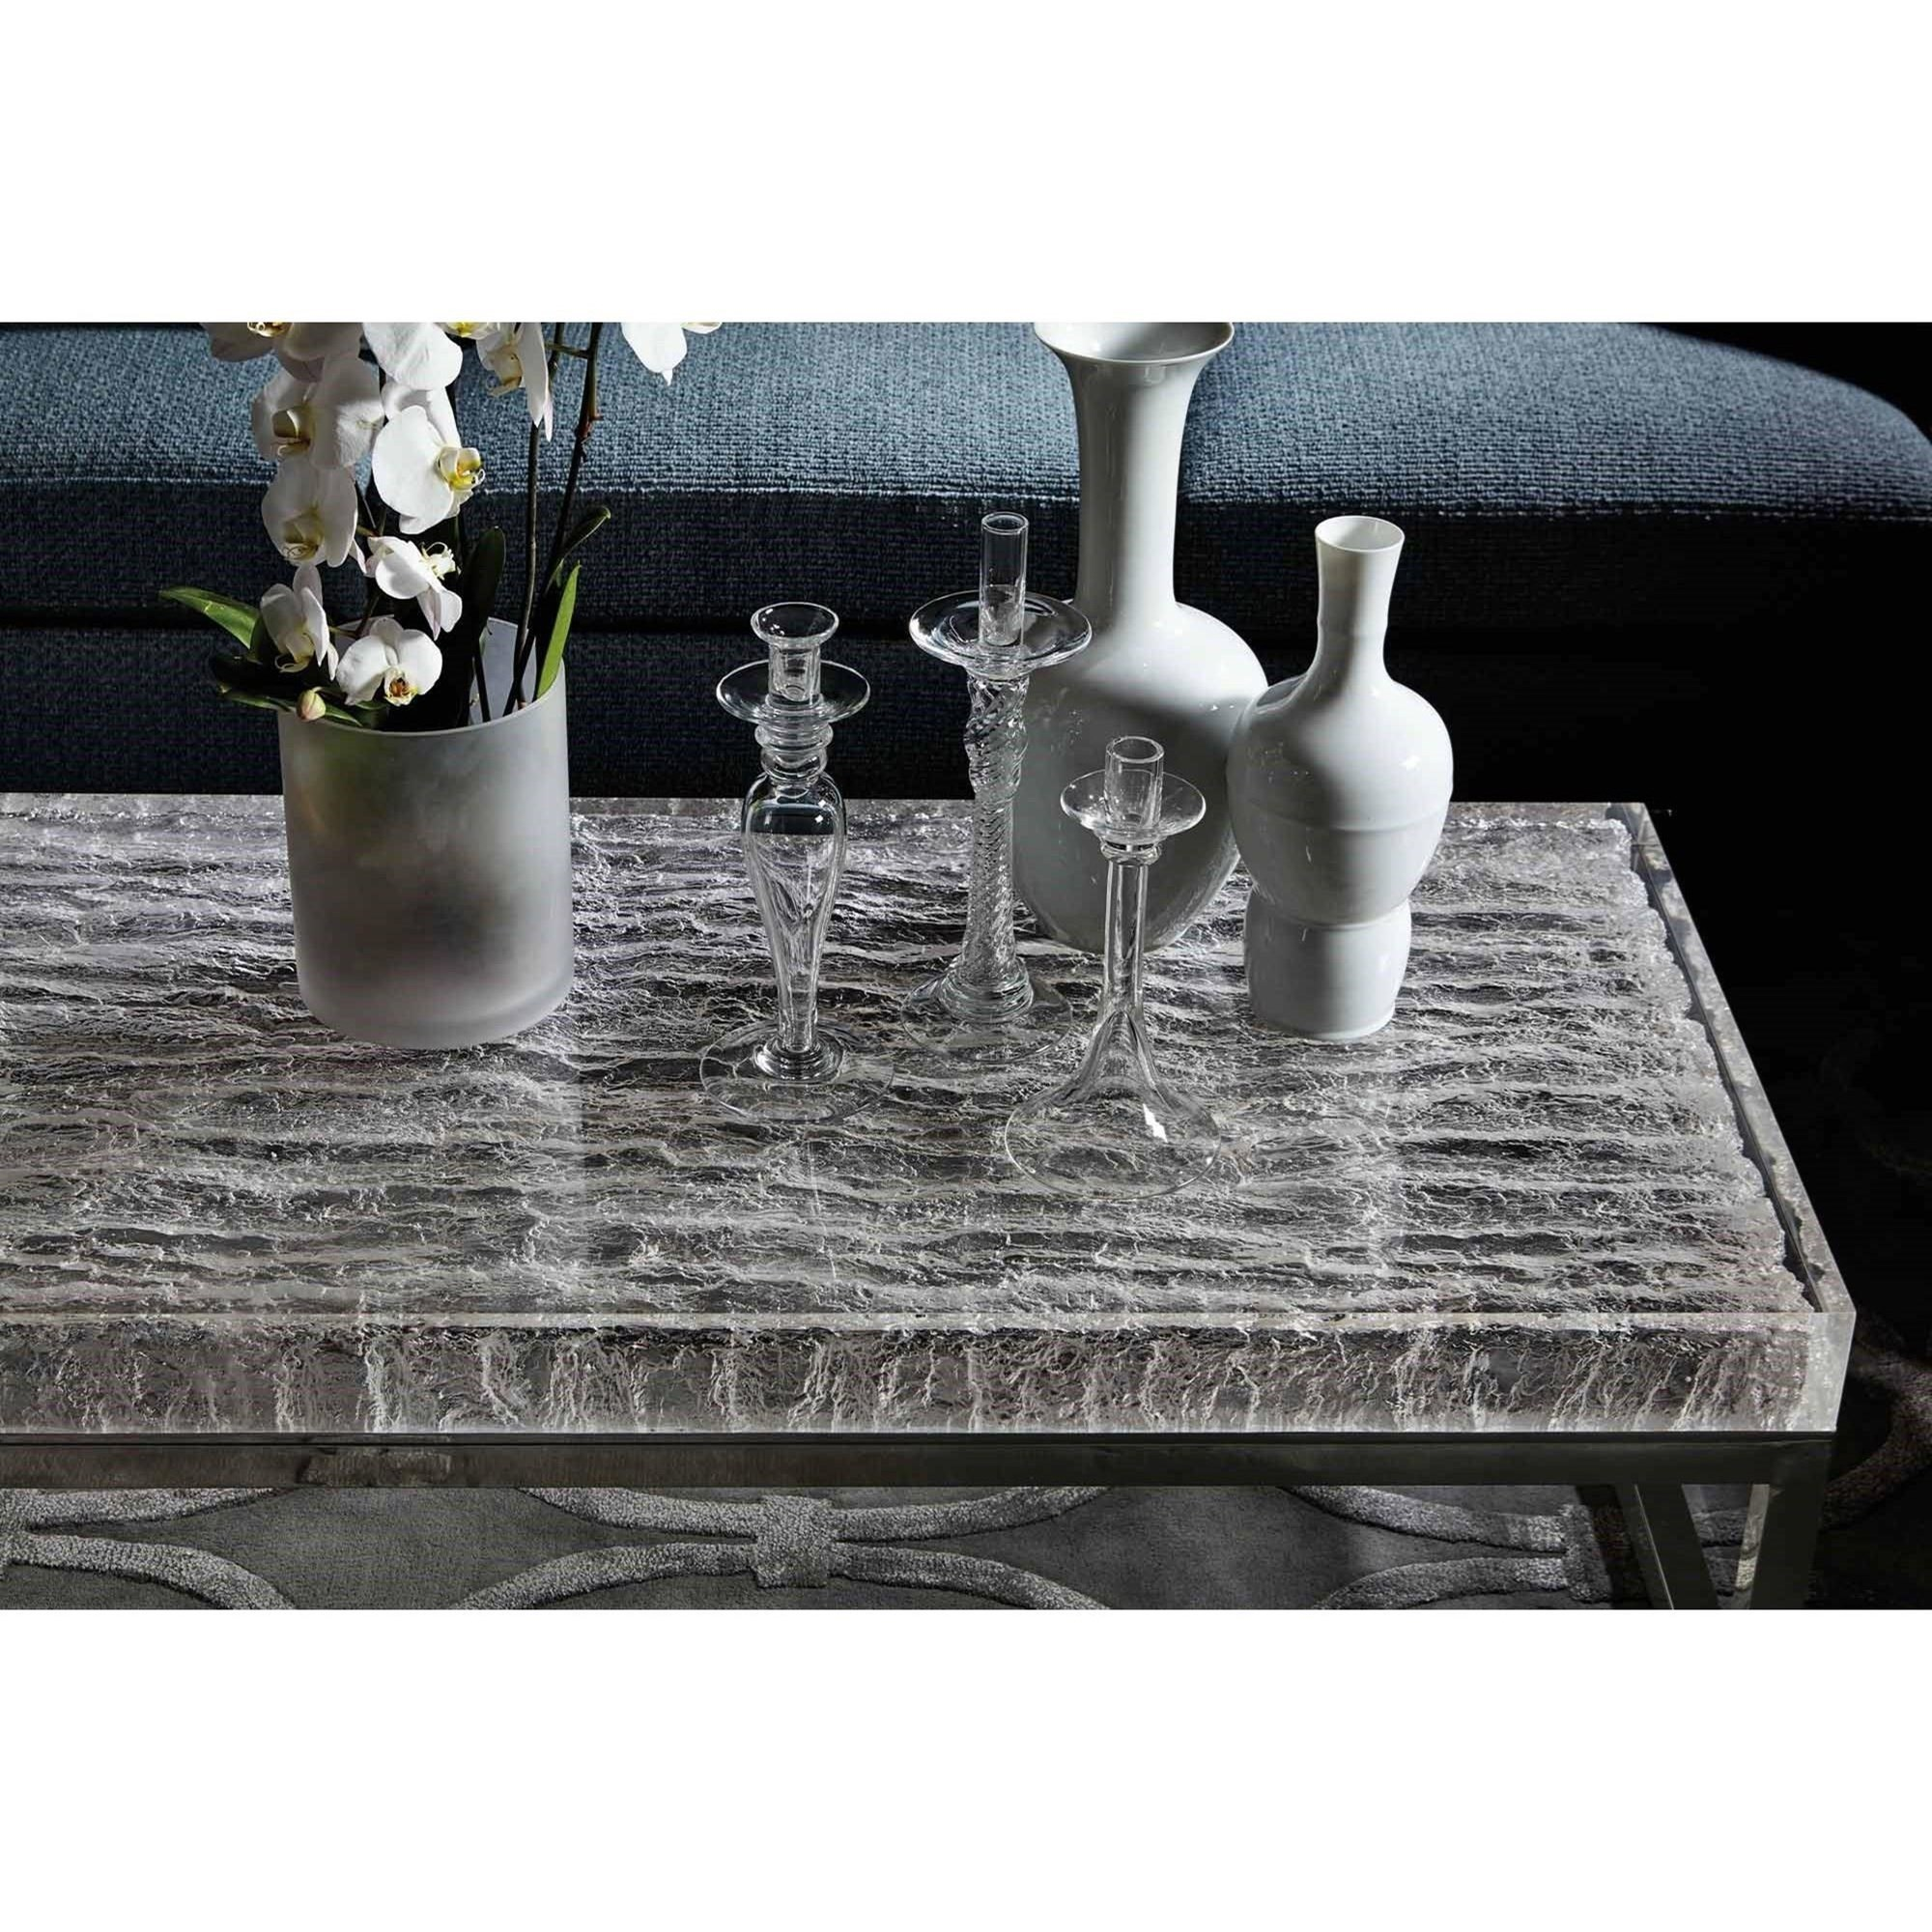 Solid Stainless Steel Coffee Table: Bernhardt Arctic 375-023 Solid Acrylic Top Cocktail Table